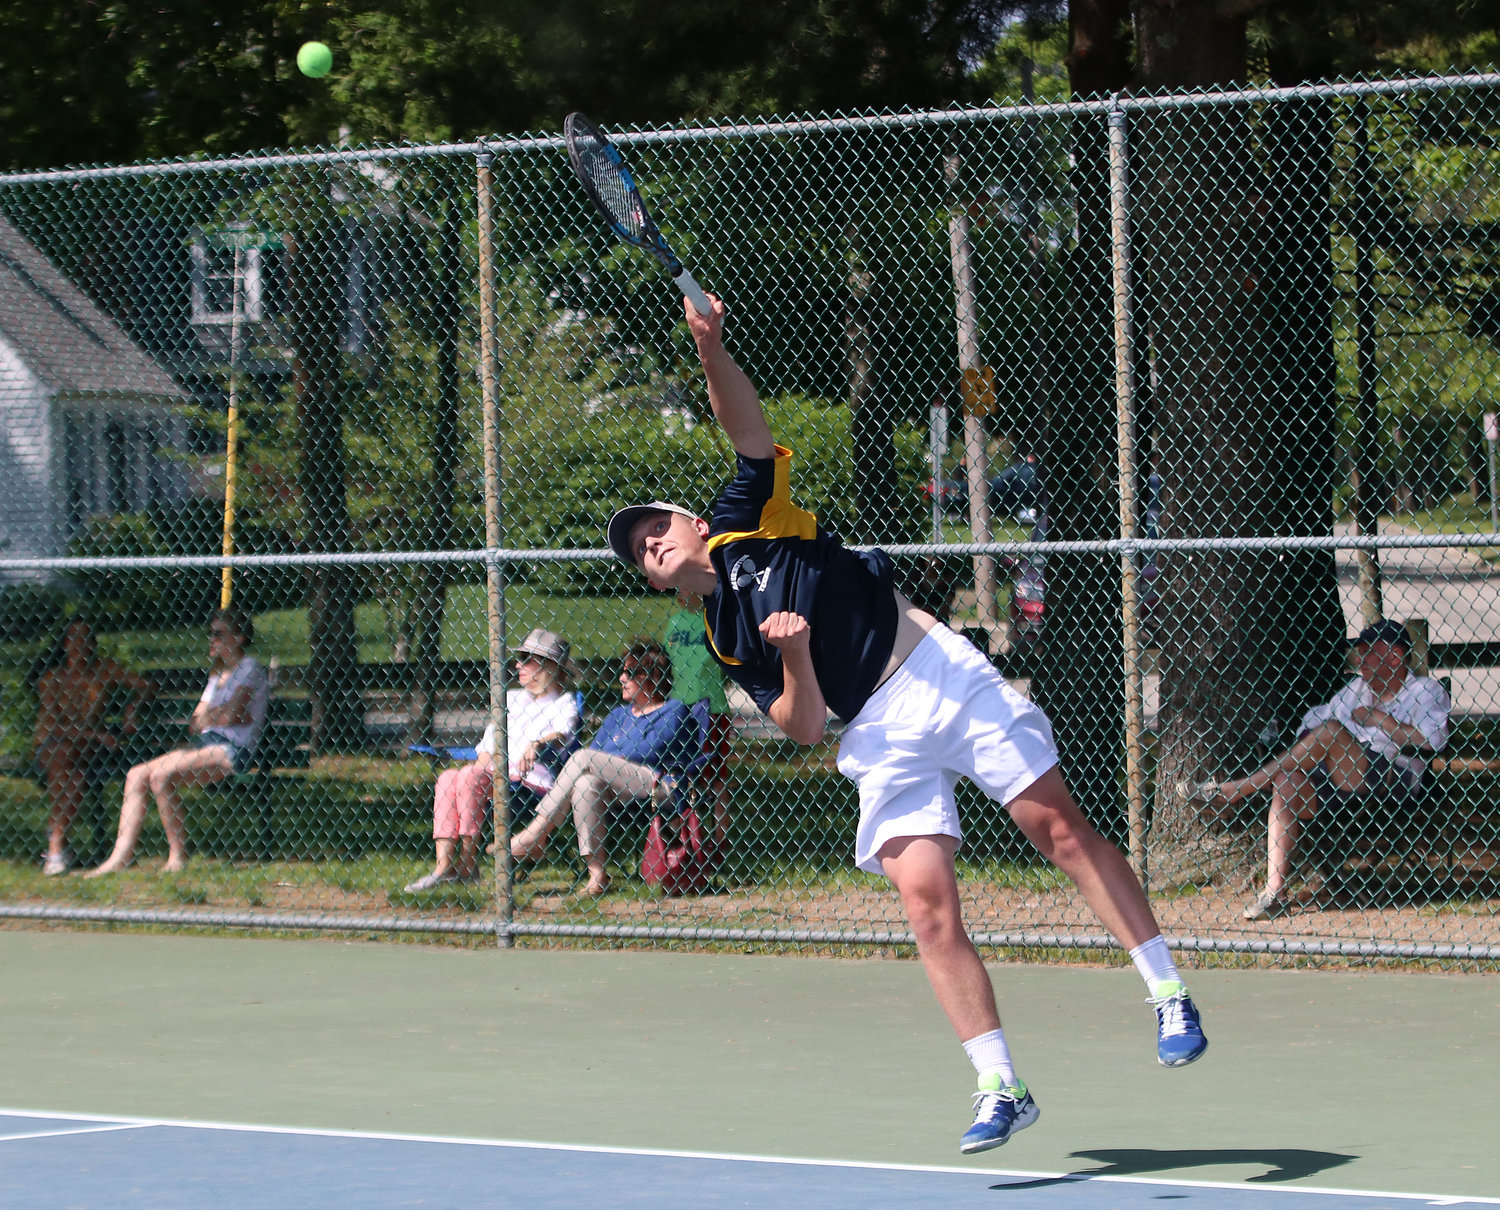 Barrington's Owen Voigt serves the ball during the state finals on Saturday.